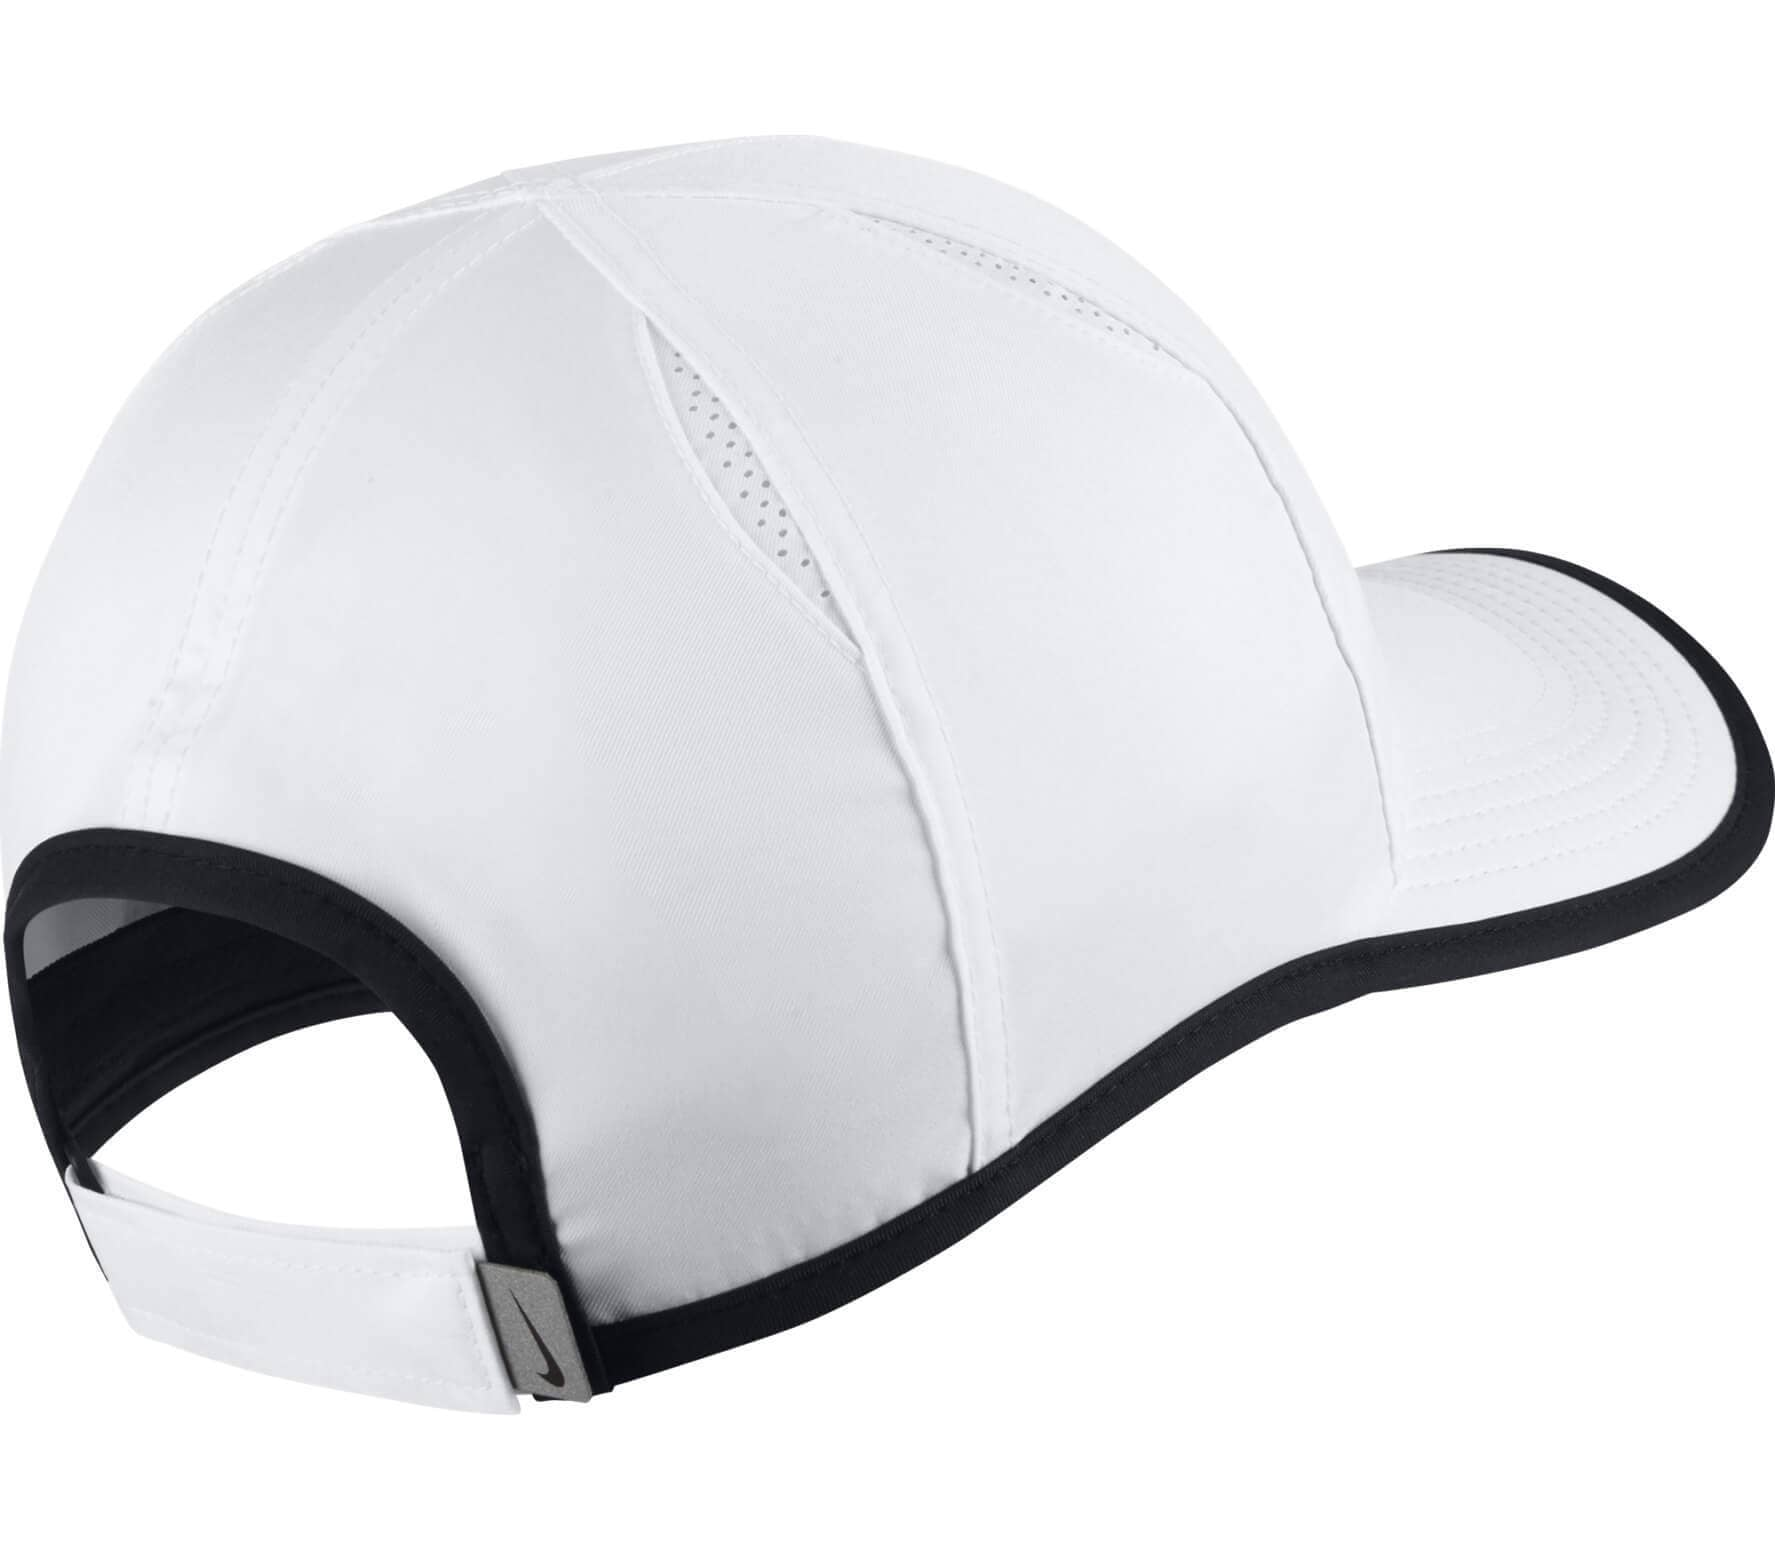 Nike - Court AeroBill Featherlight Tenniscap (w...